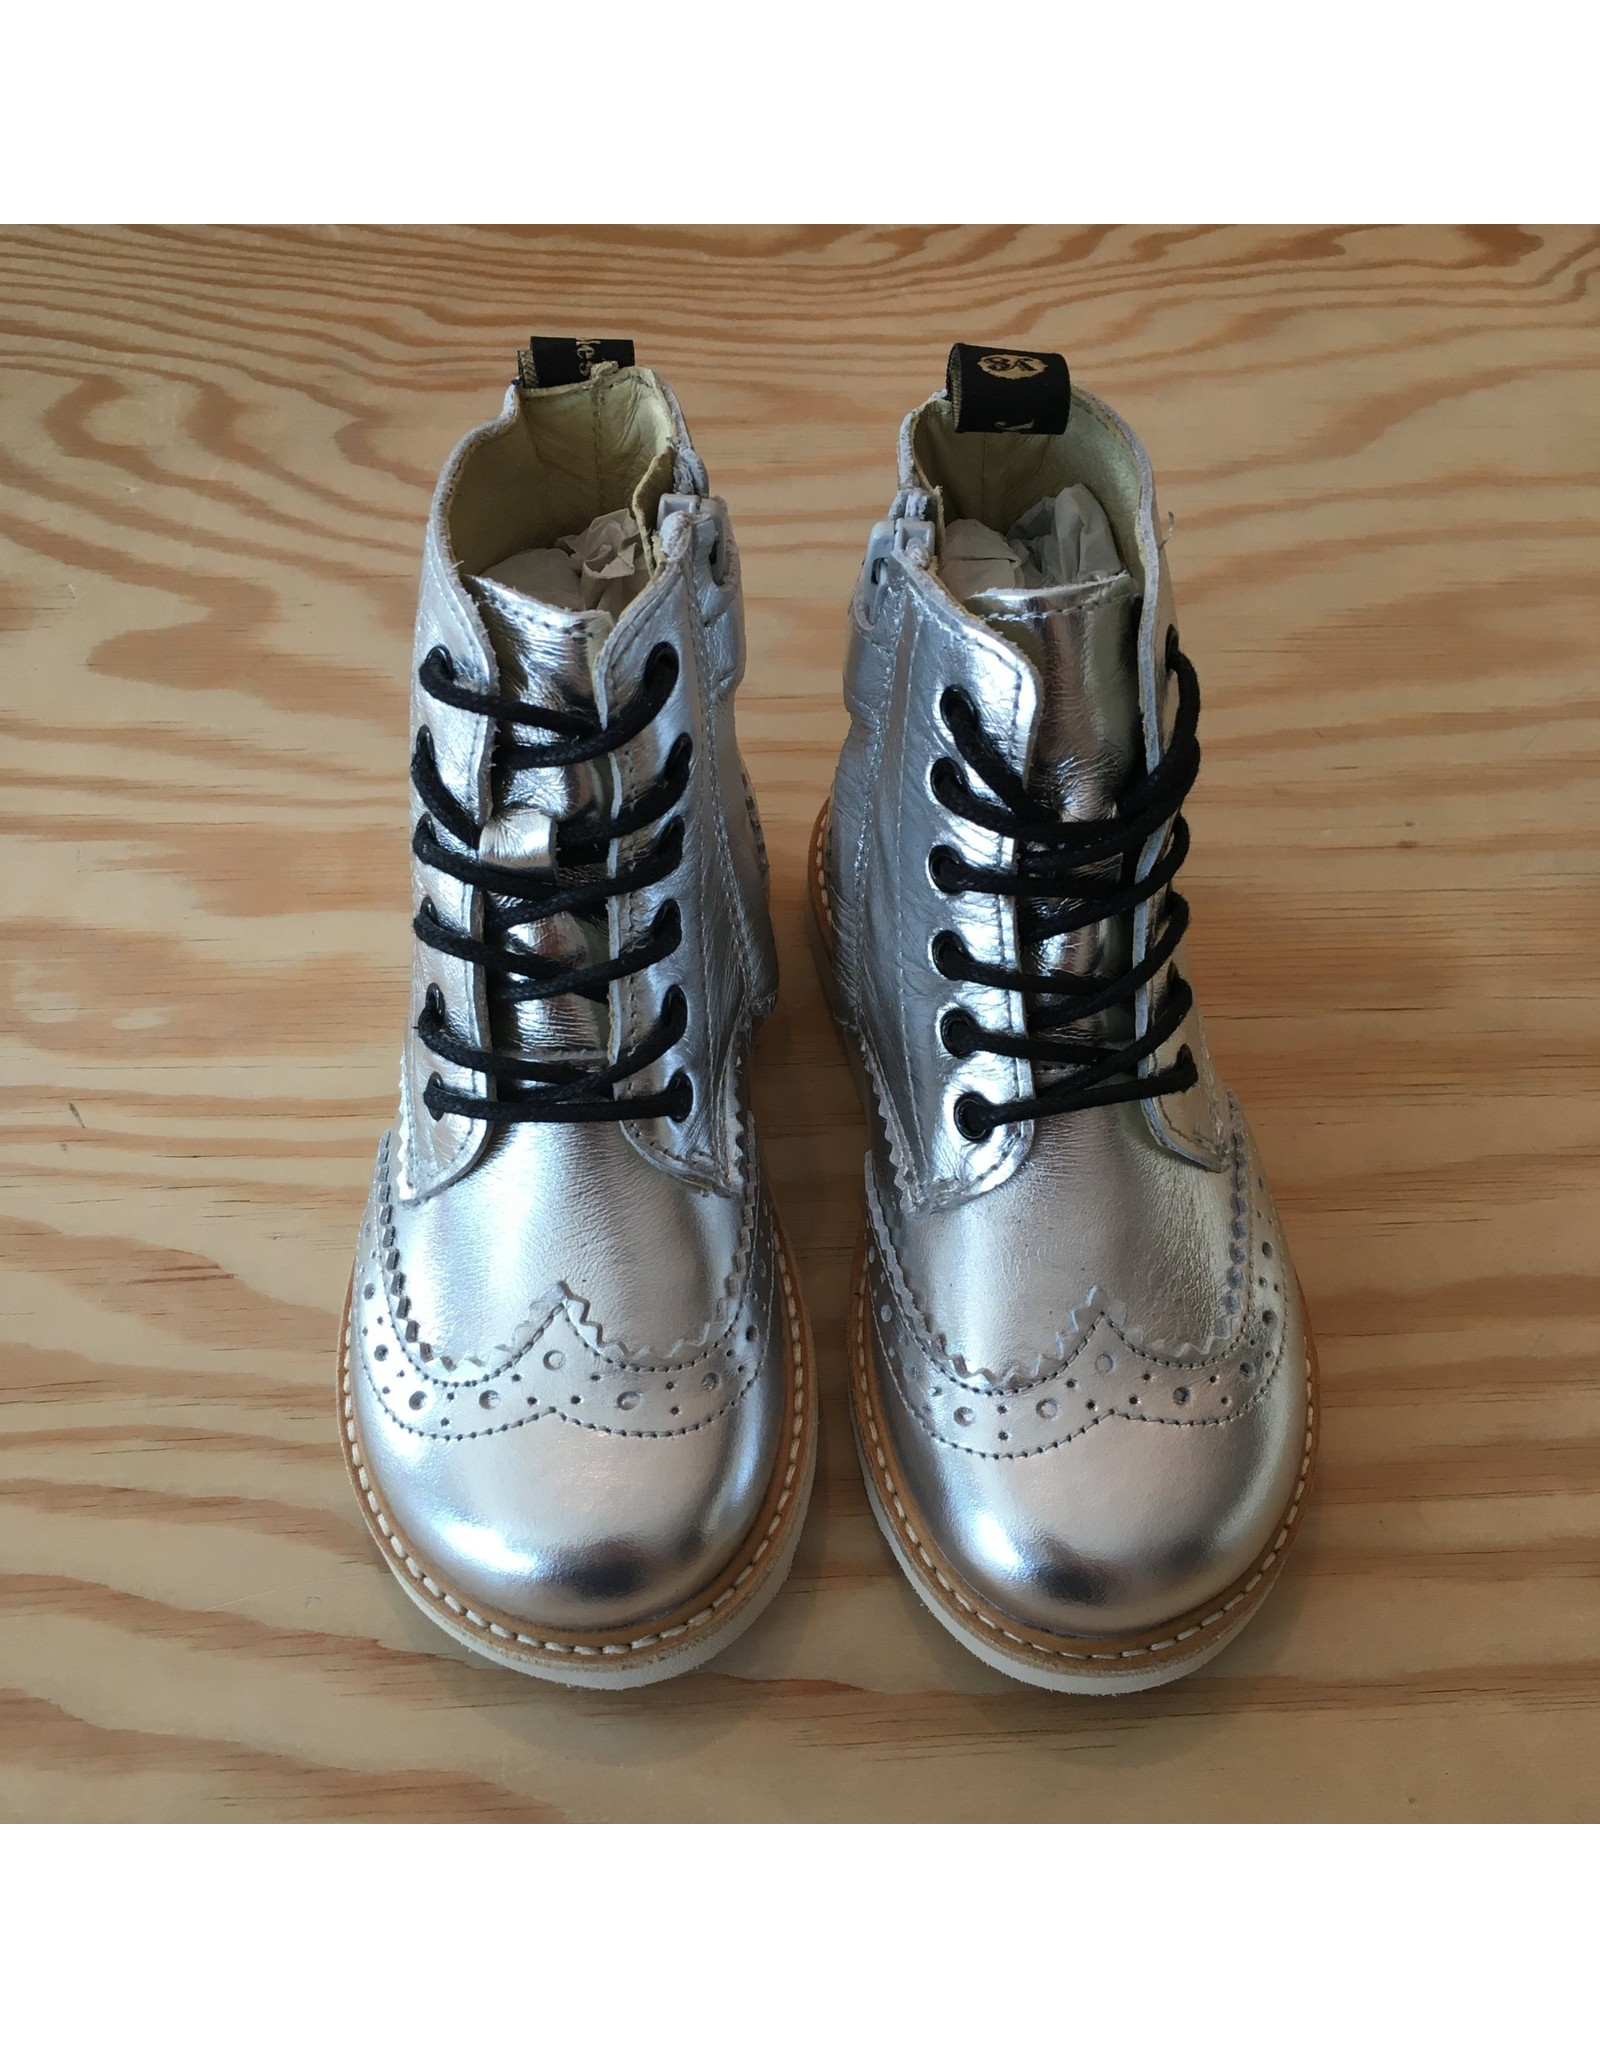 YOUNG SOLES YOUNG SOLES SIDNEY BROGUES SILVER